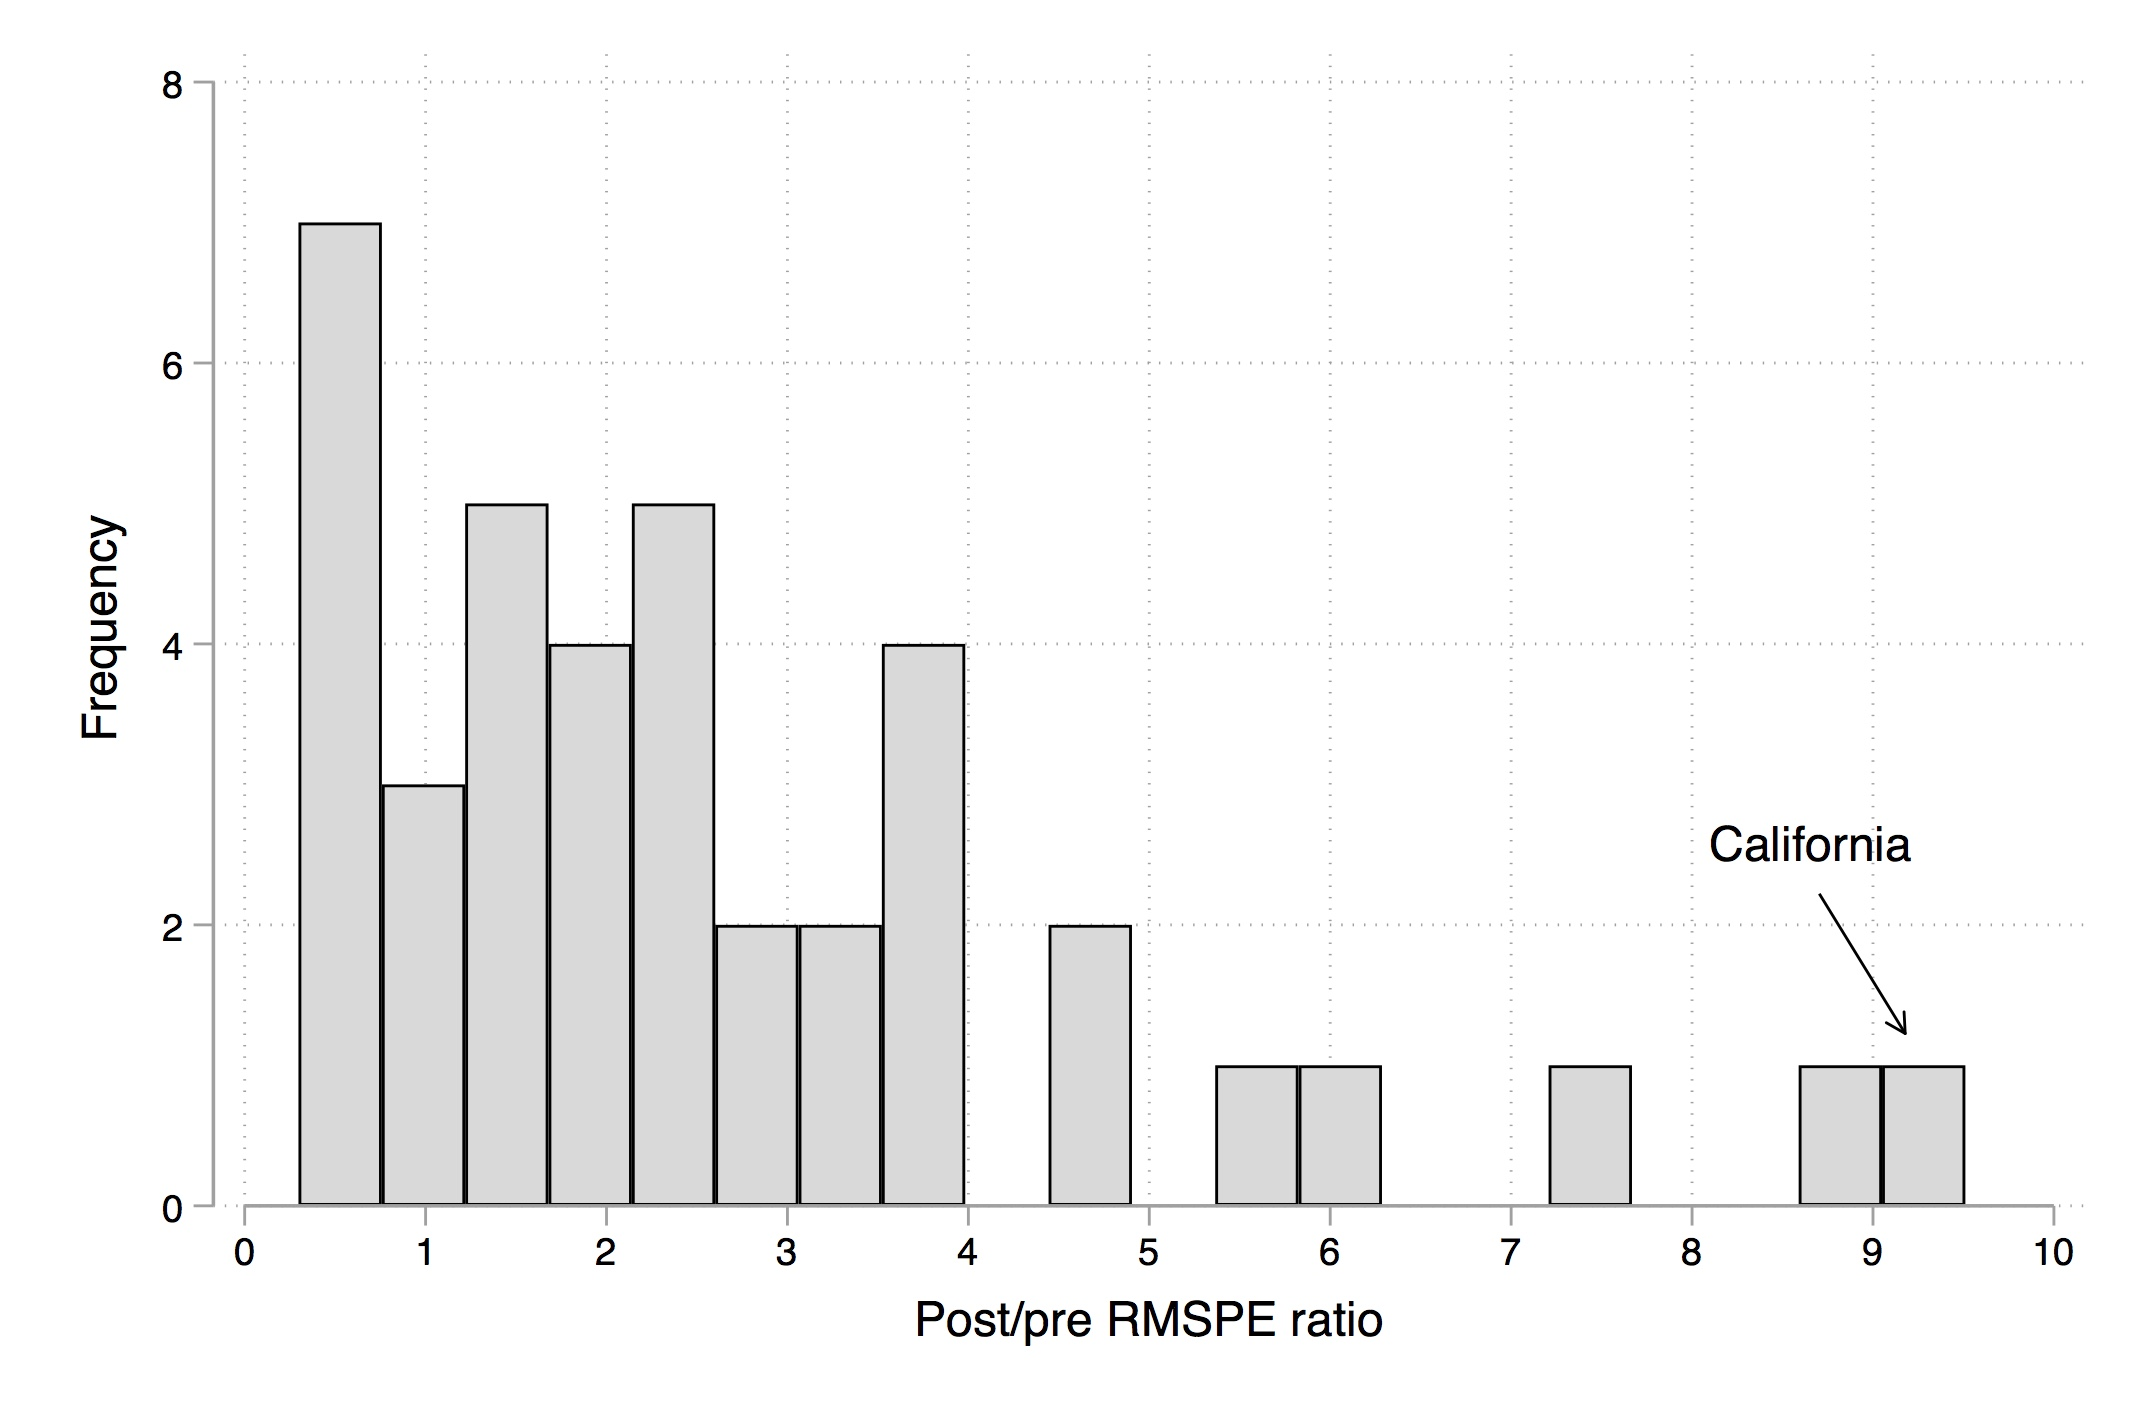 Histogram of post/pre RMSPE of all units.